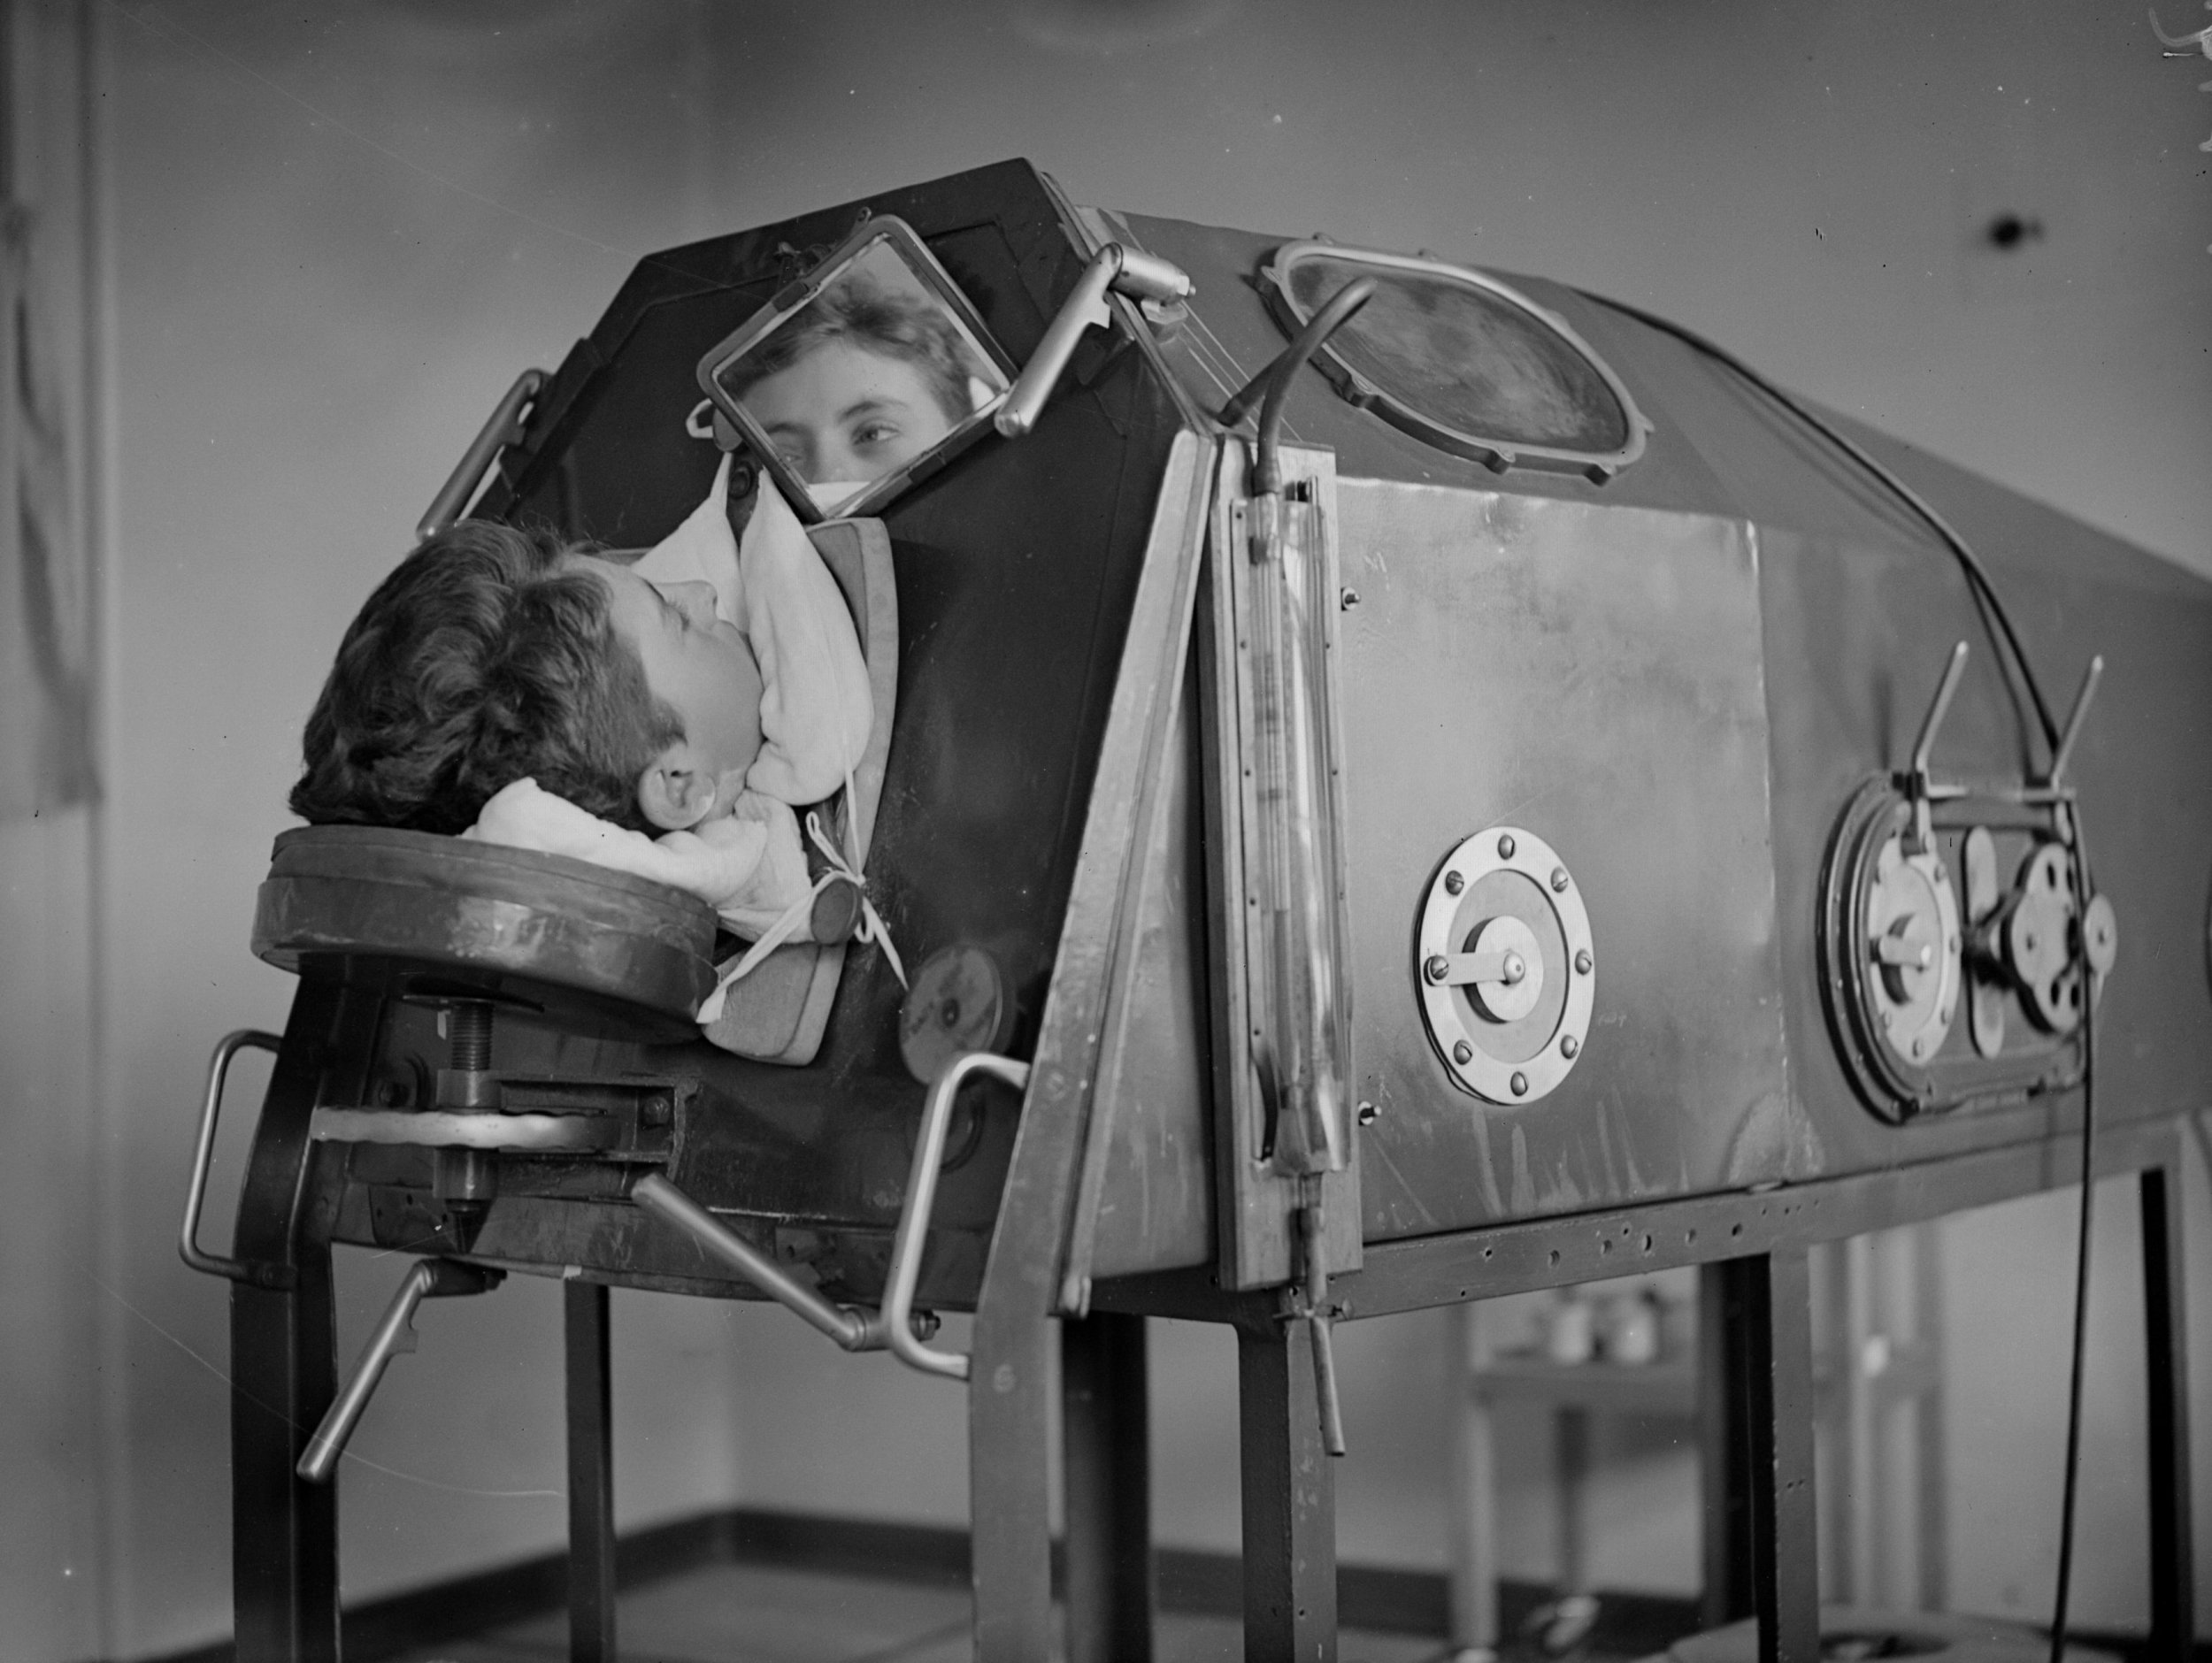 iron-lung-getty-images